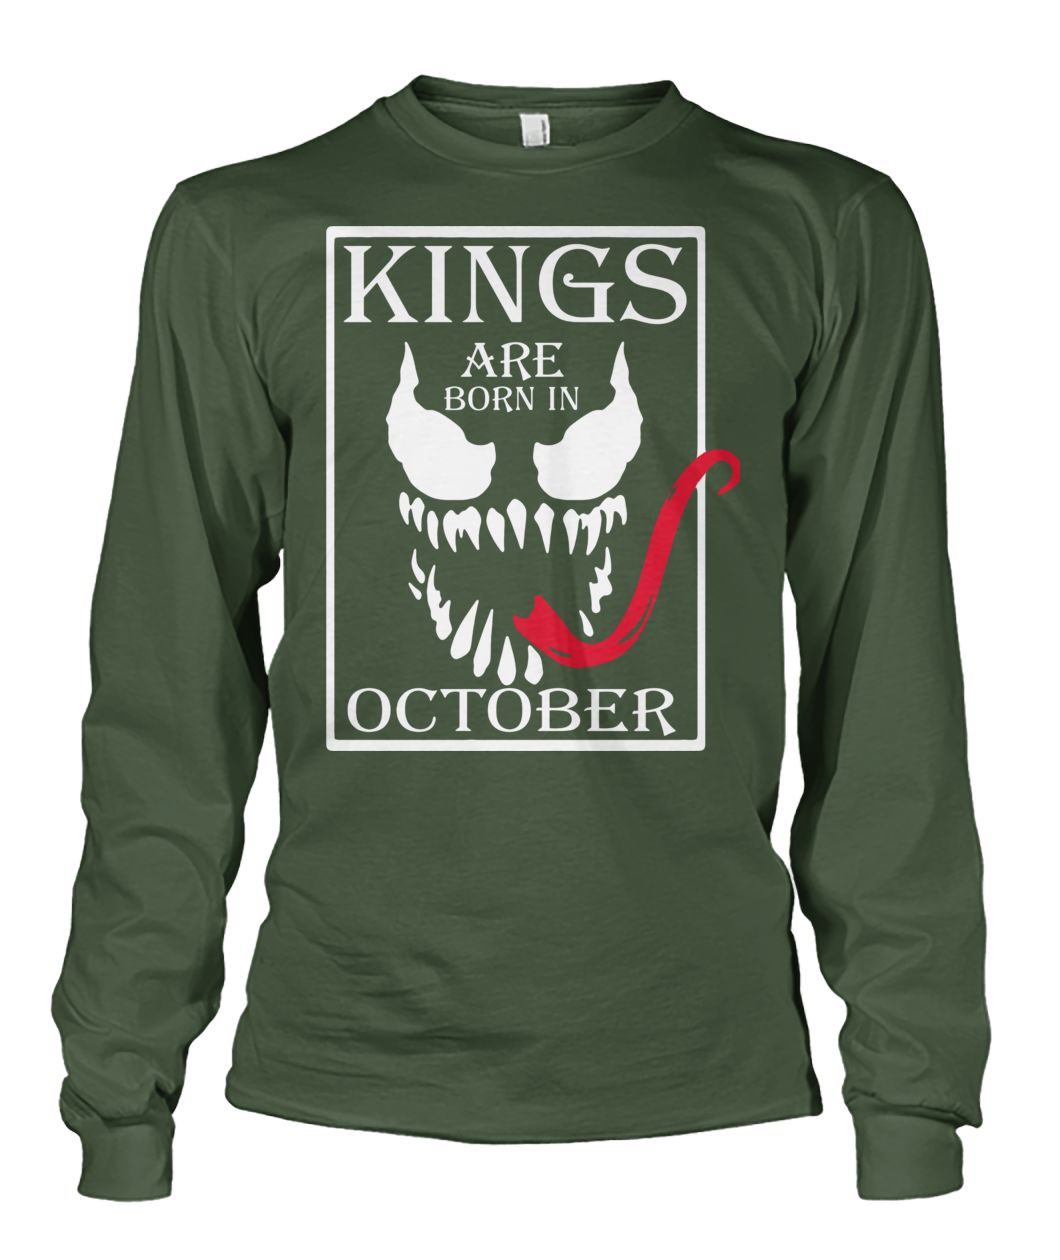 Kings are born in october unisex long sleeve